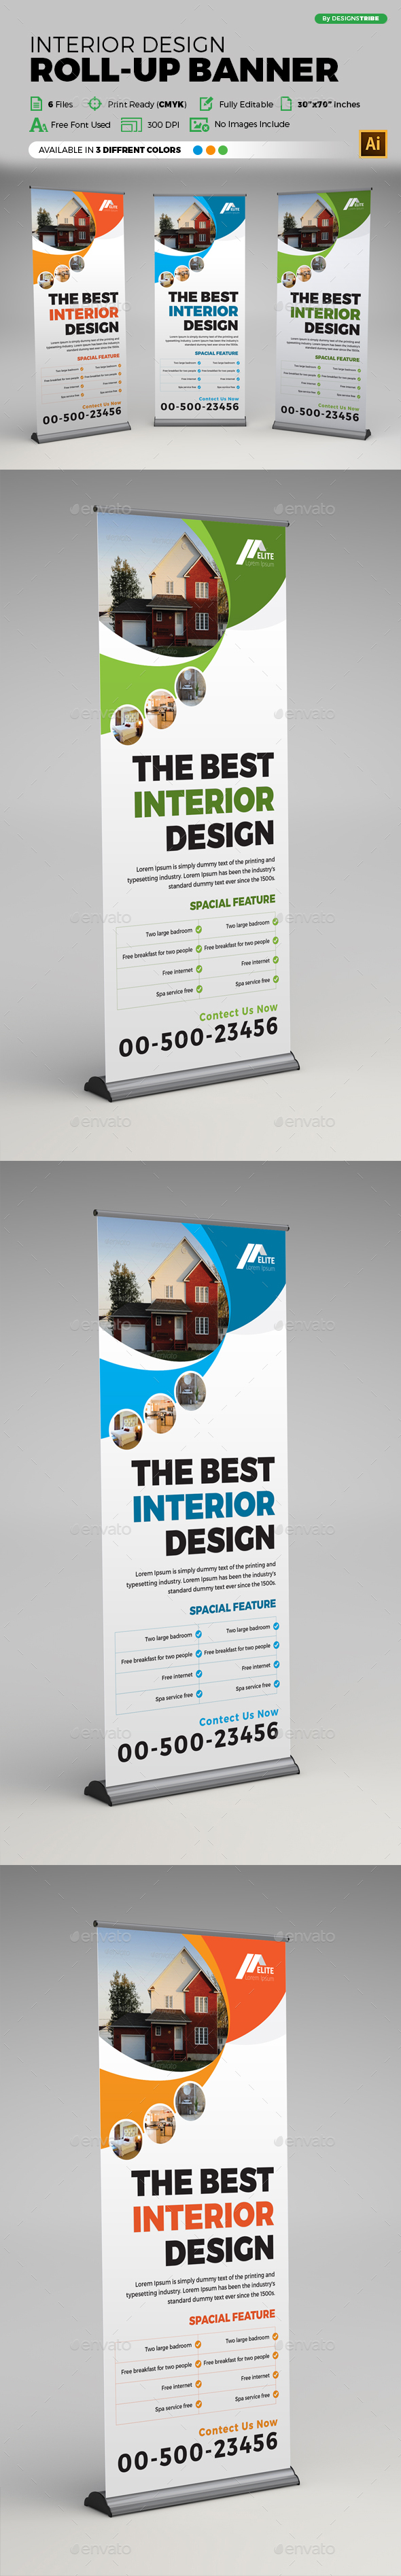 Interior Design Roll-up Banner - Signage Print Templates